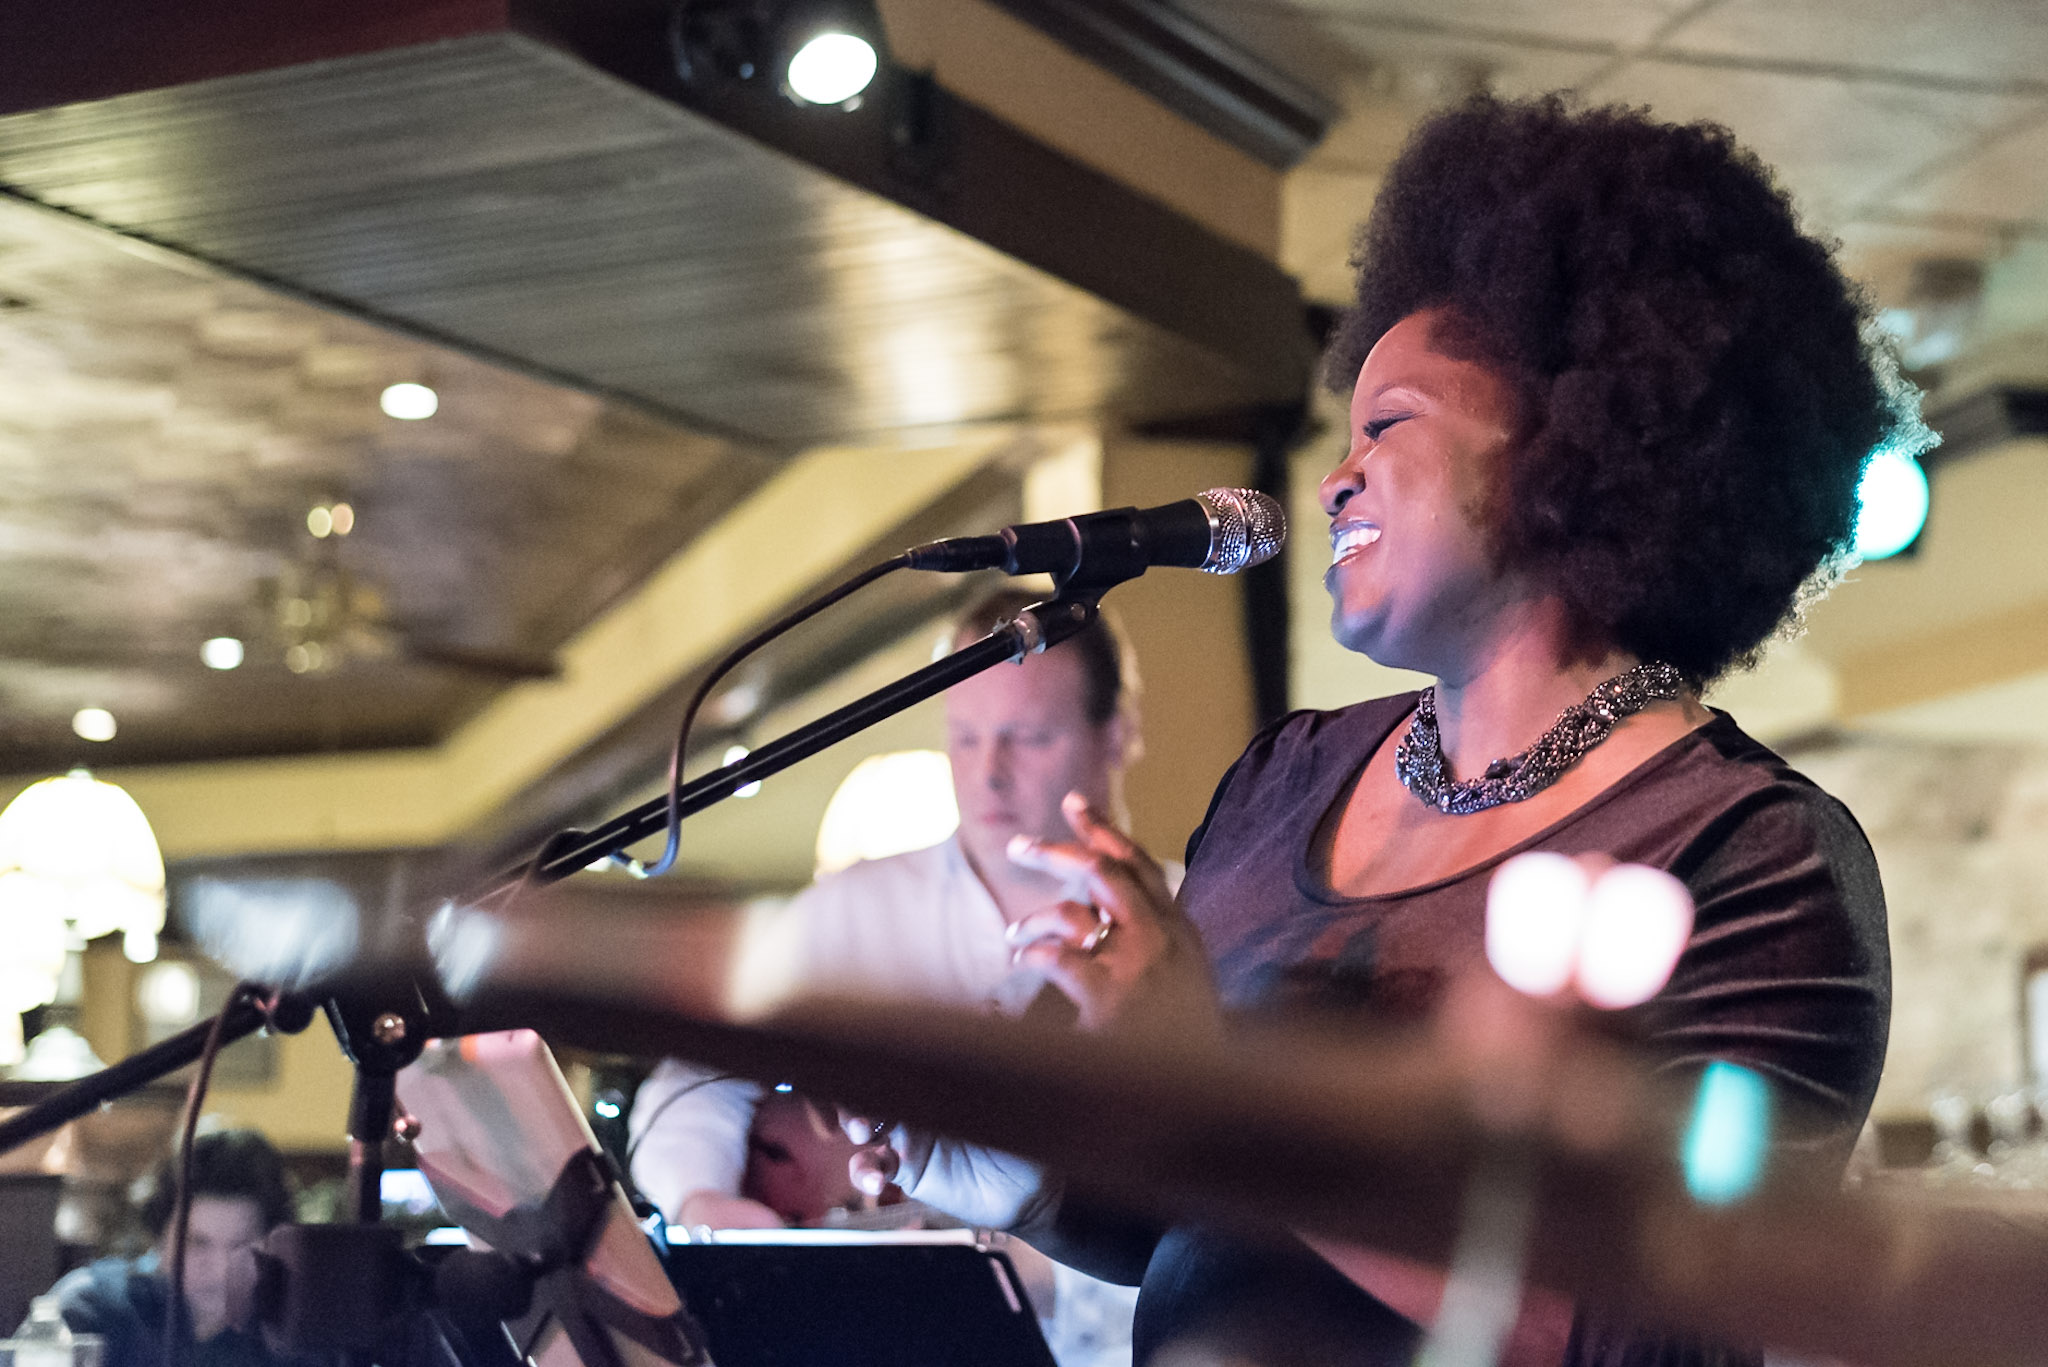 The Michele Thomas Quartet will lead the lineup of jazz artists at the newly opened Naperville location of Pete Miller's where the restaurant will offer private event space for groups of 12 to 70 and live jazz seven nights a week.